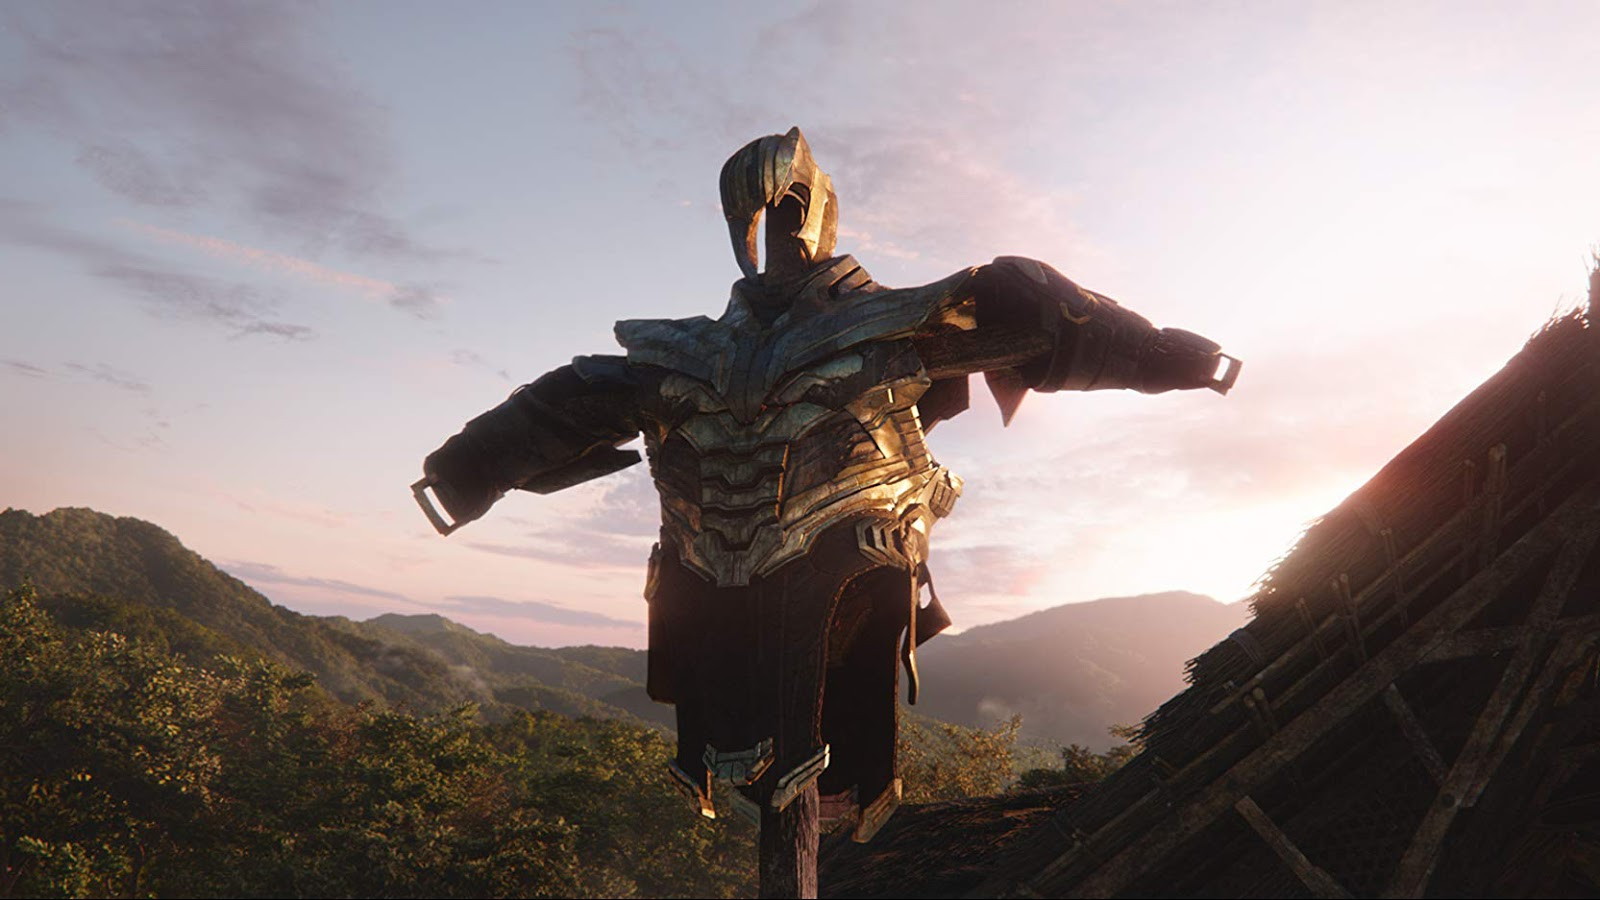 The Last Thing I See Avengers Endgame 2019 Movie Review